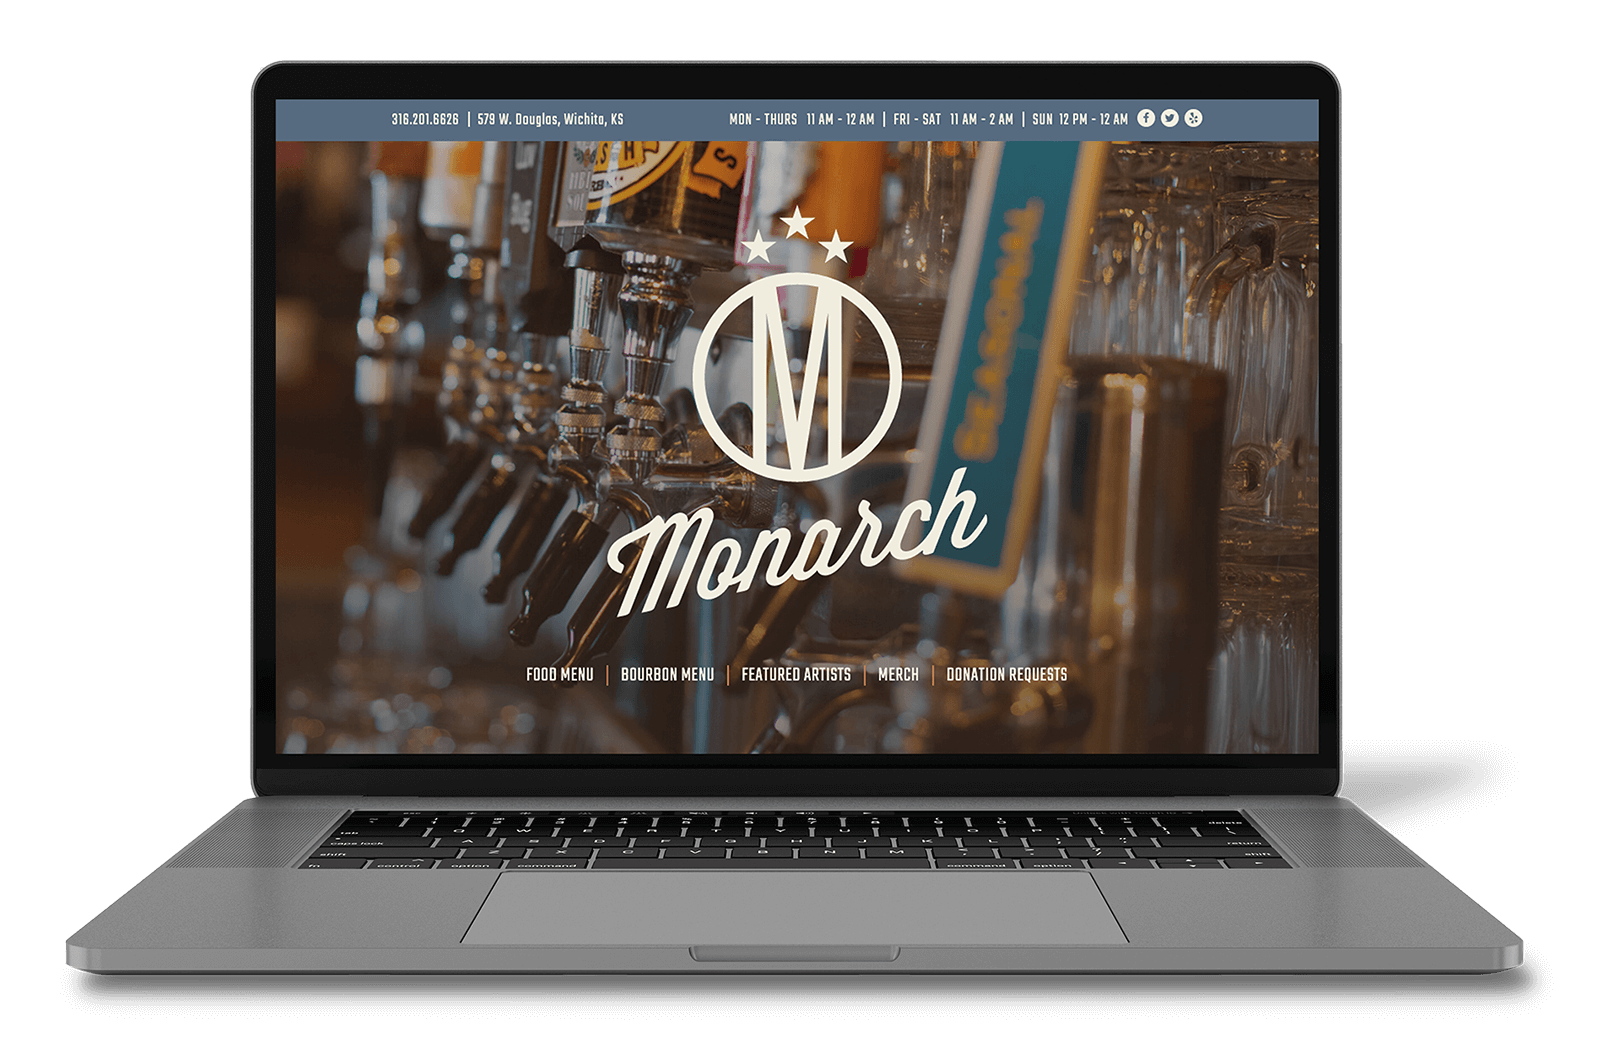 The Monarch Website on MacBook Restaurant Web Design